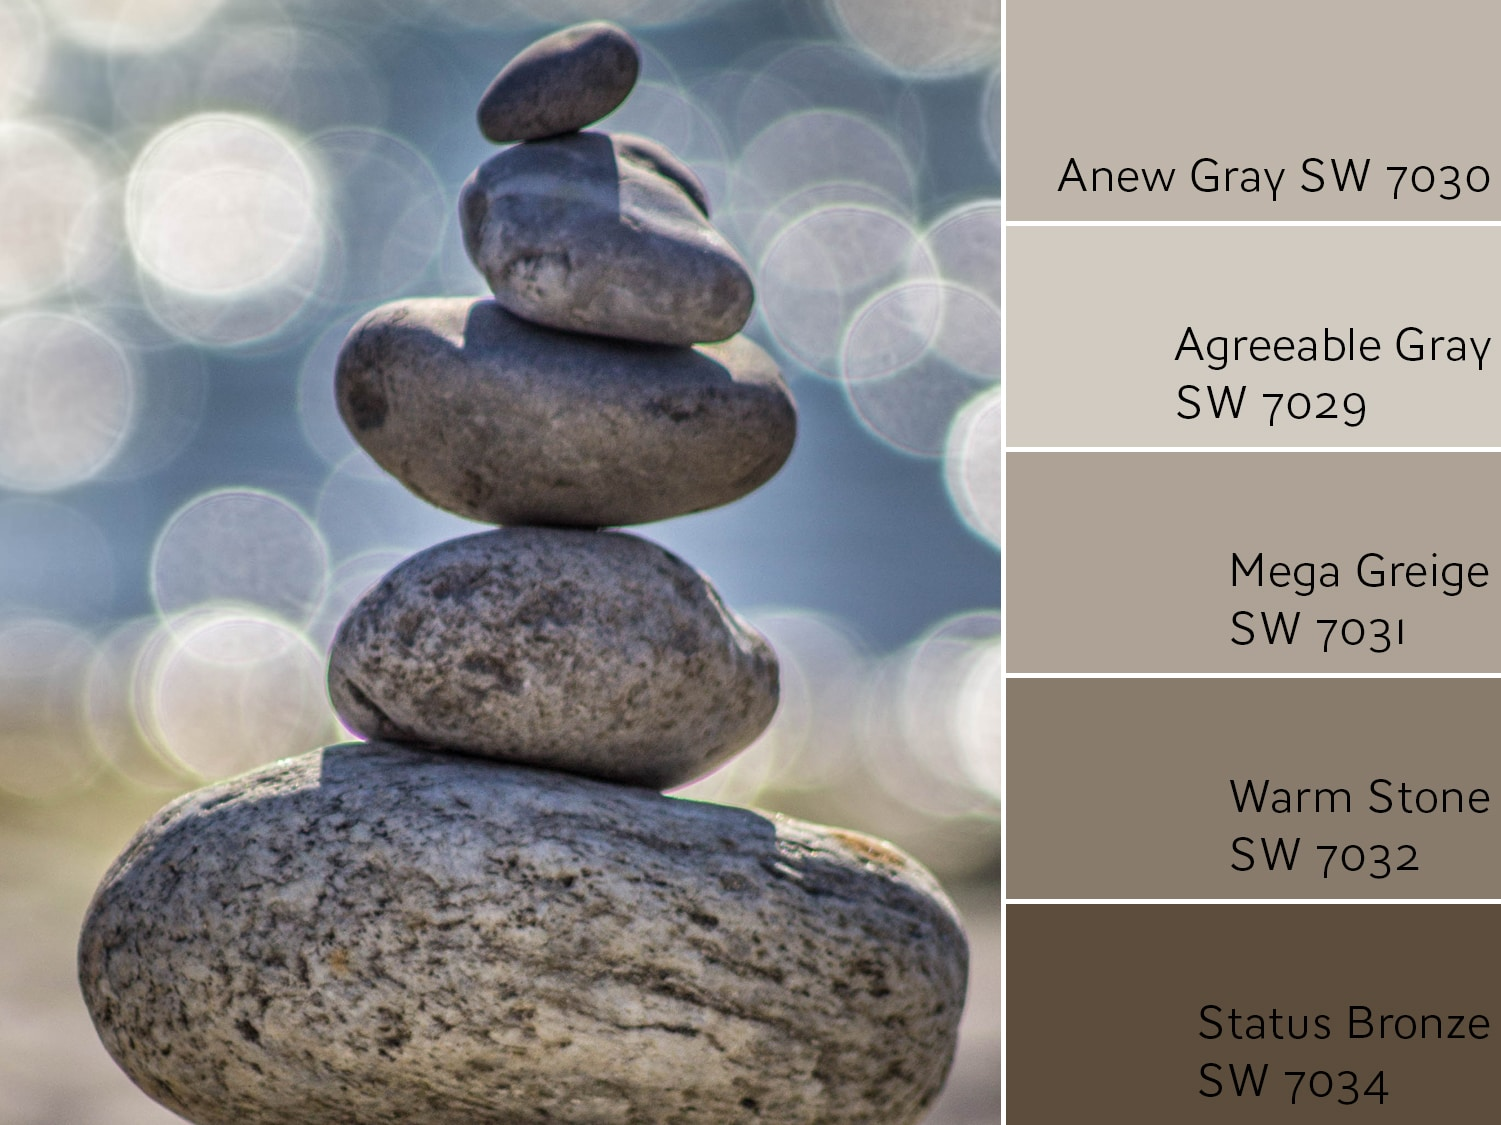 Anew Gray Monochromatic Color Scheme